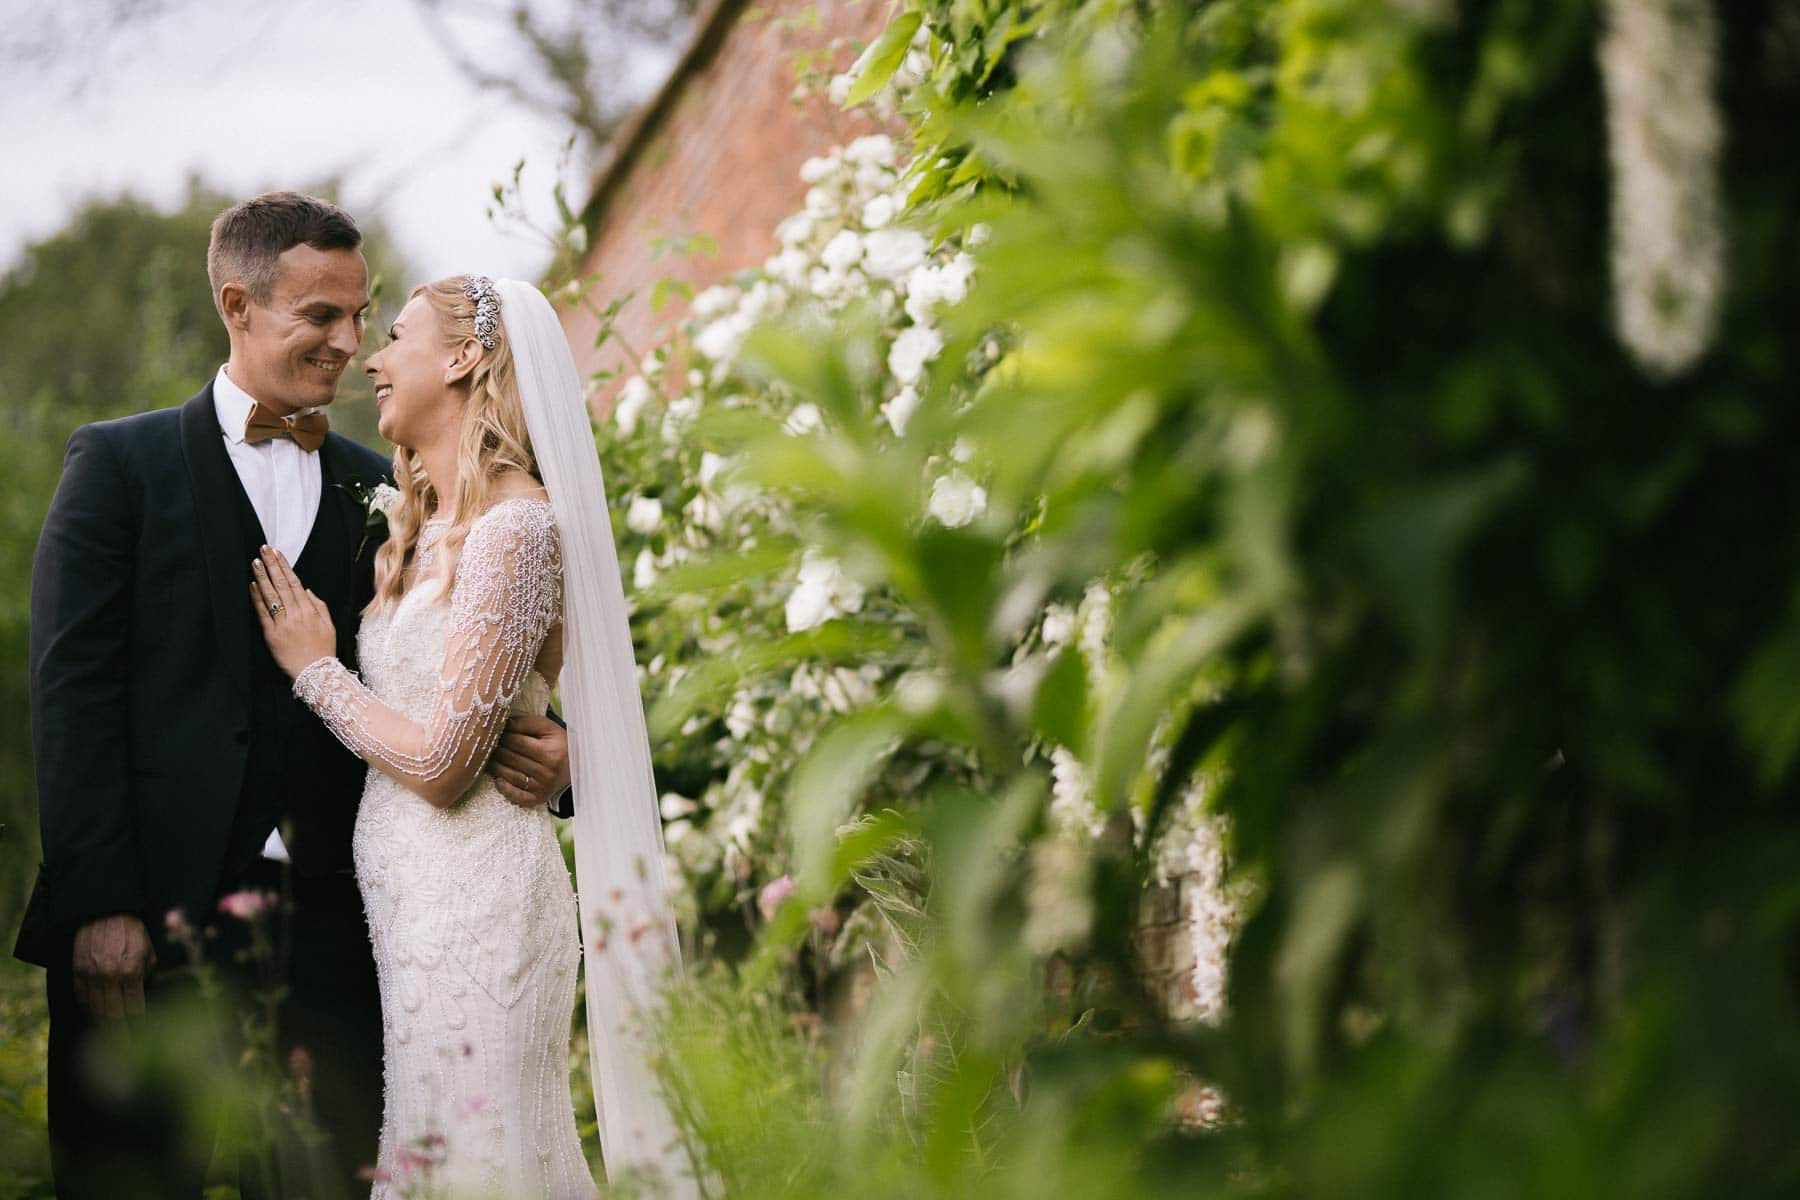 Recommended wedding photographer Stunning wedding portrait in the walled gardens at Delapre abbey